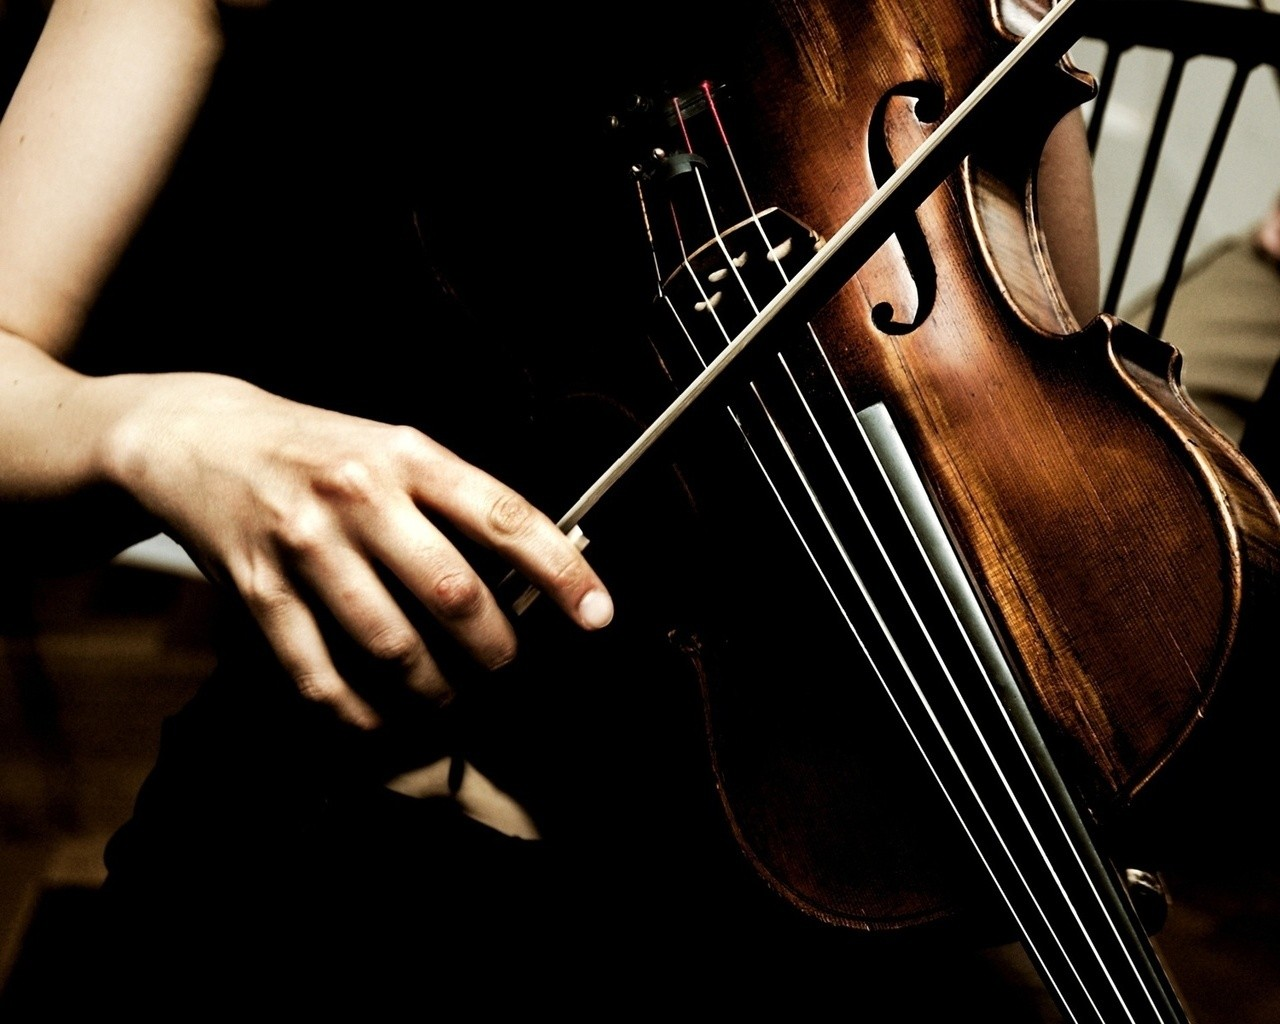 Playing Violin Instrument Wallpaper